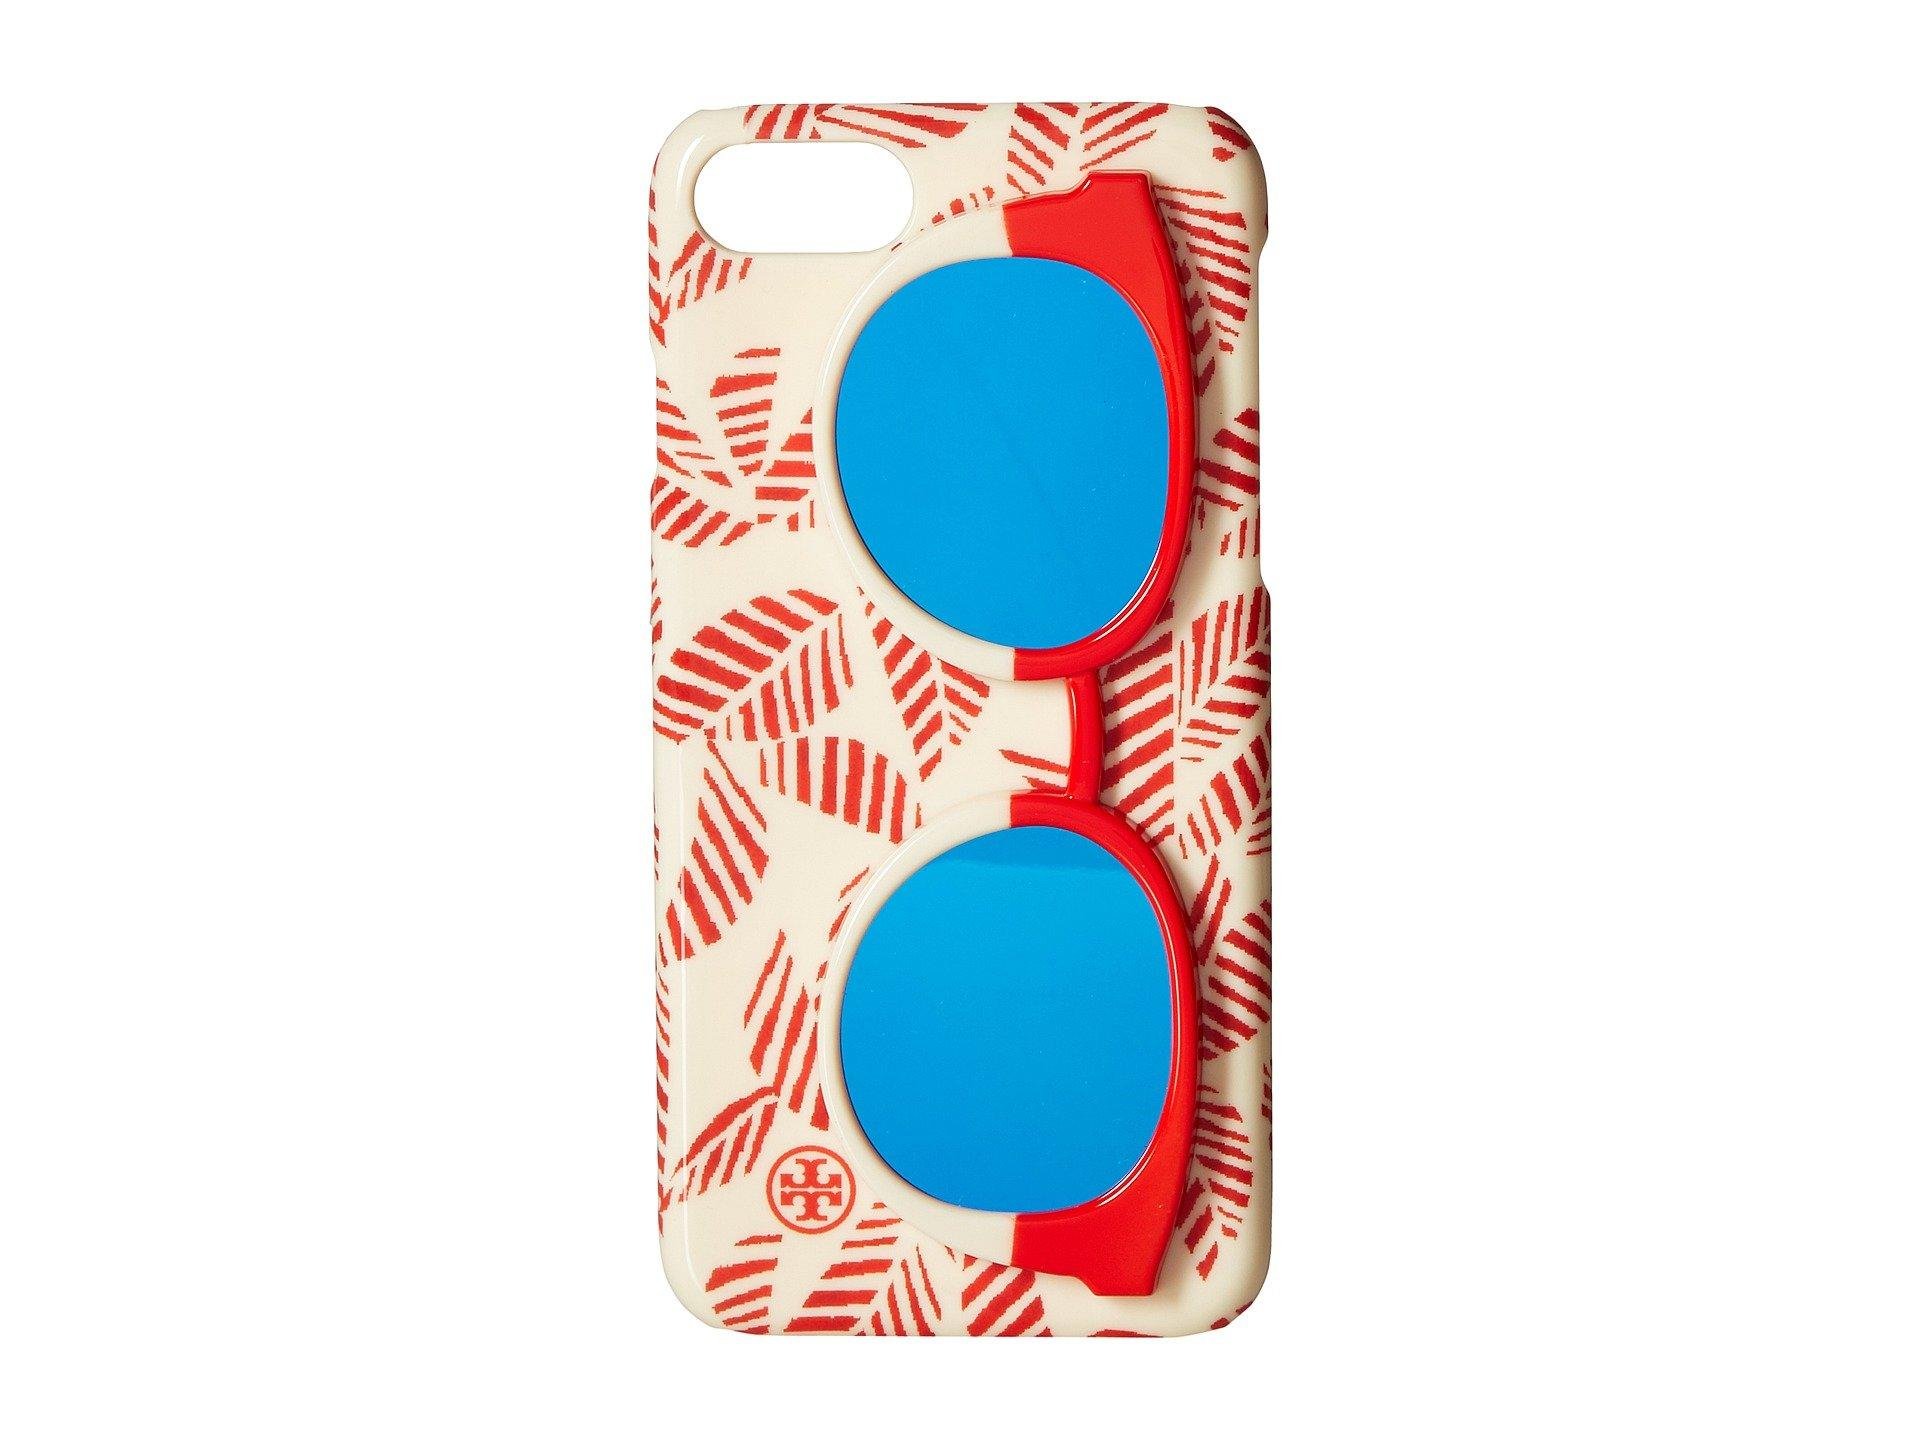 9c808ffd1 Tory Burch Mirror Sunnies Case For Iphone 7 In Palmetto